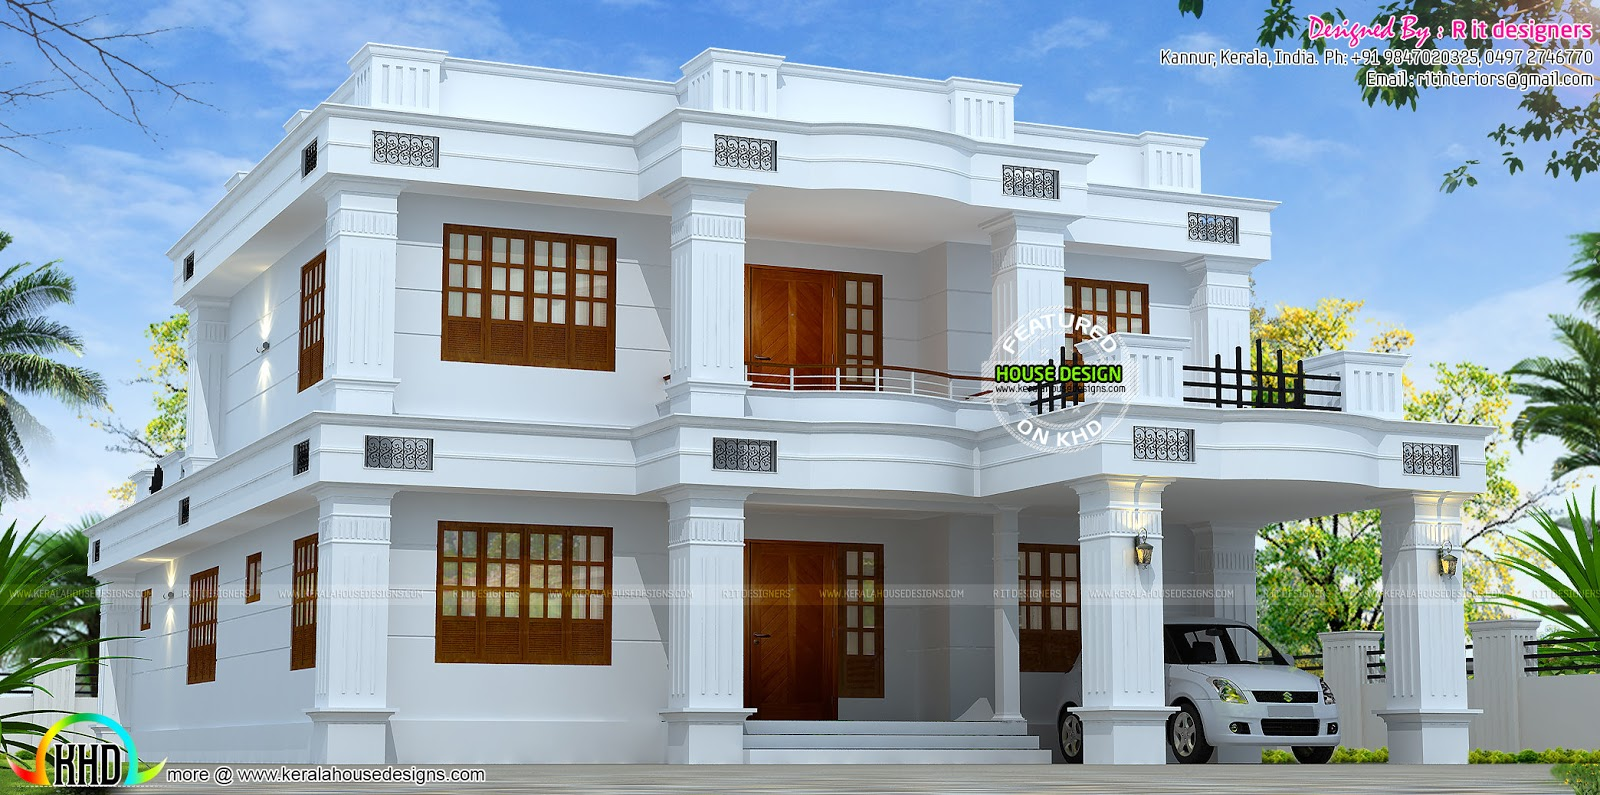 February 2016 kerala home design and floor plans Home building design